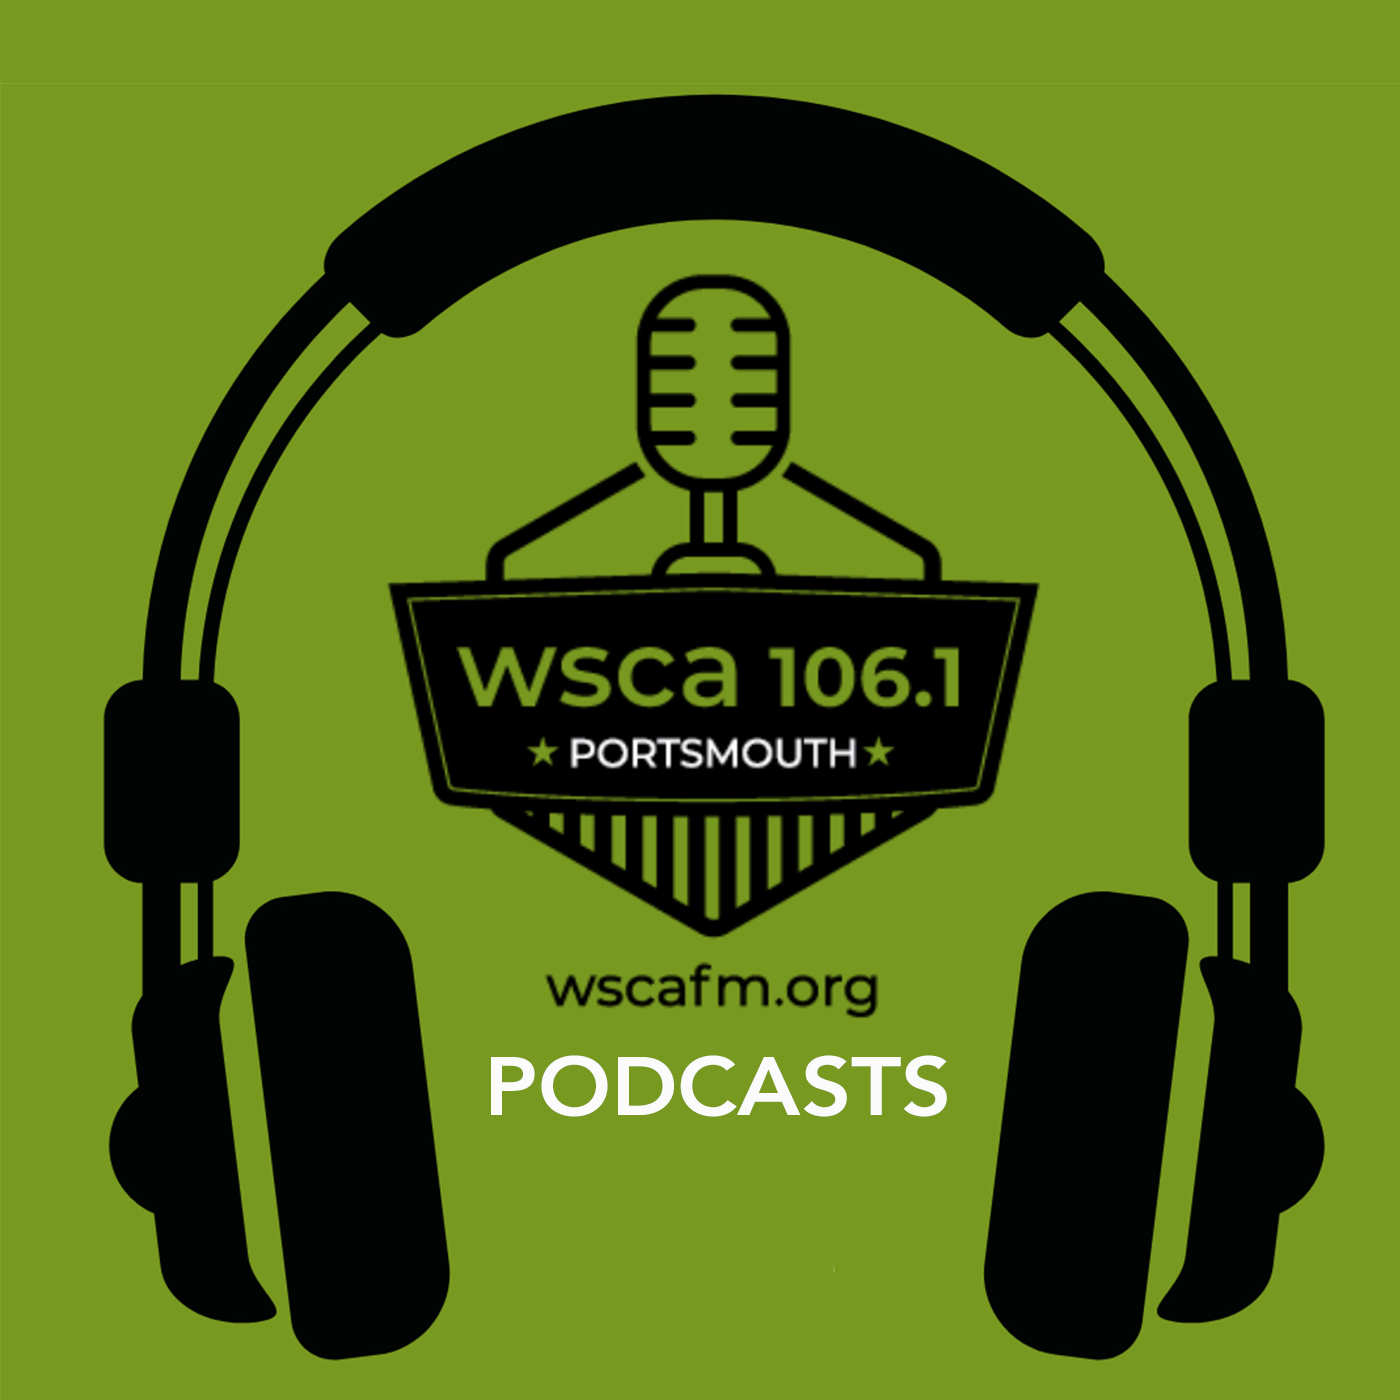 WSCA Podcasts